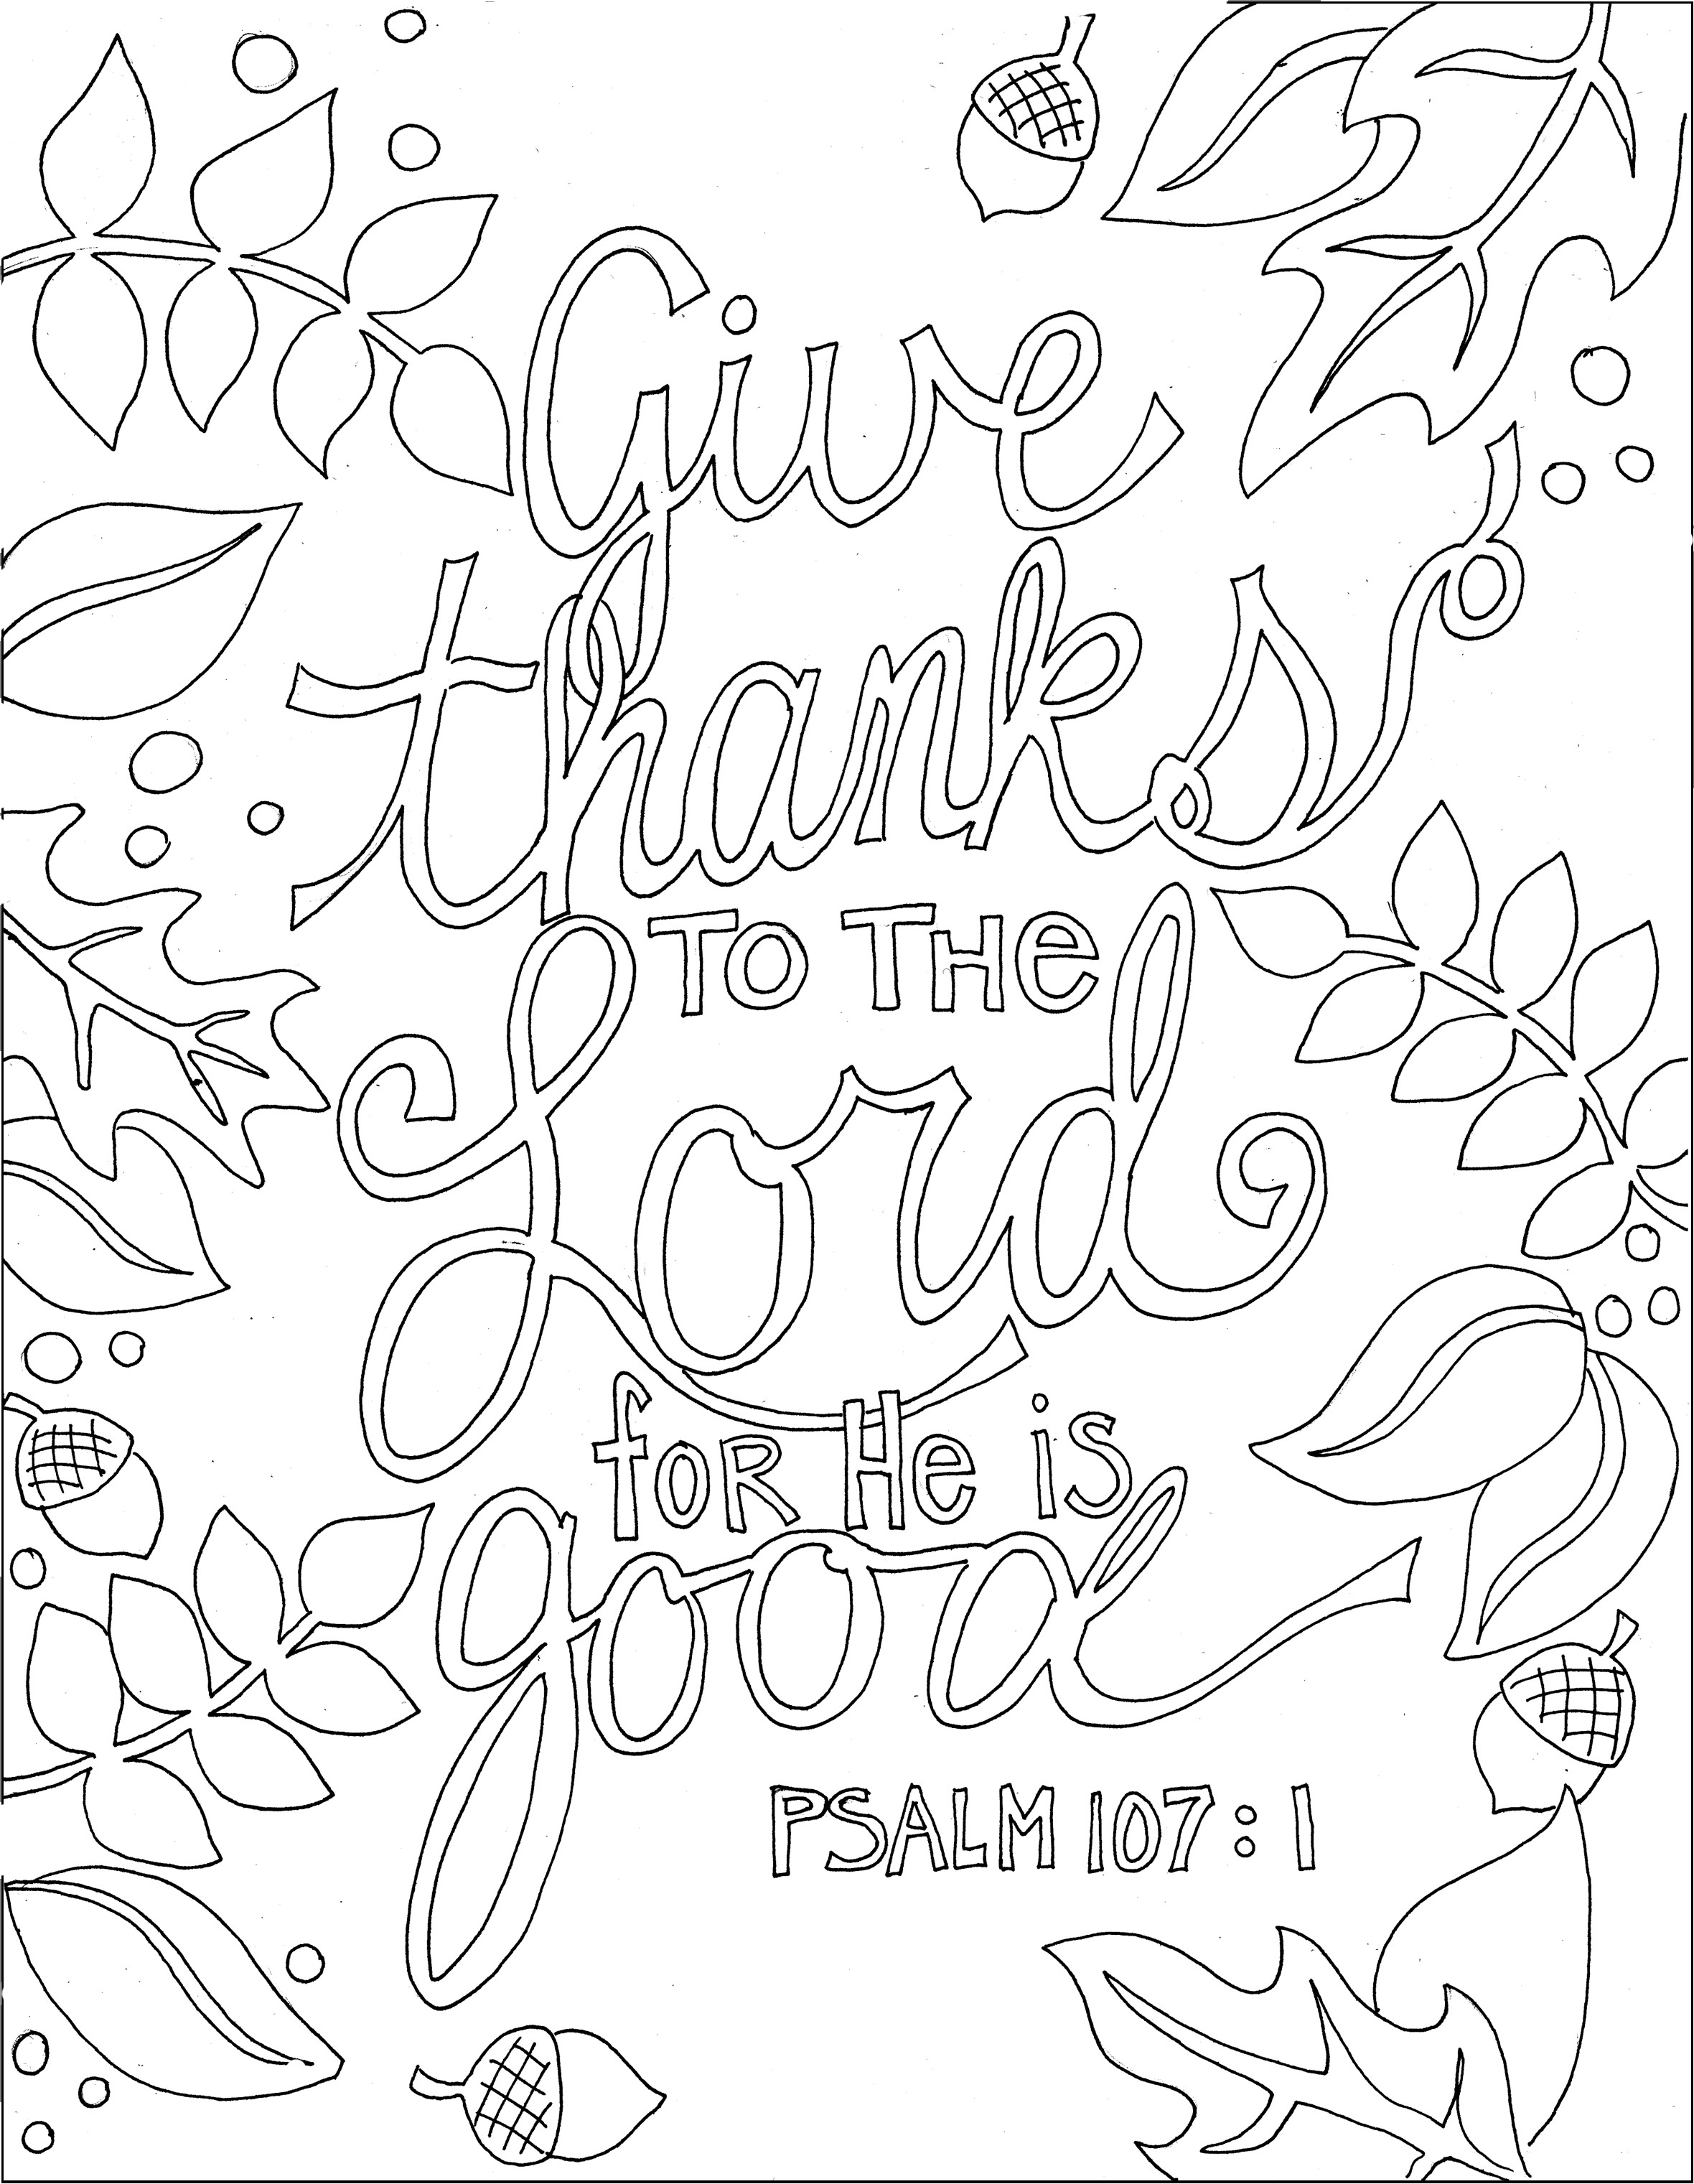 Bible Verse Coloring Sheets For Kids  Bible Quote Coloring Pages Coloring Home